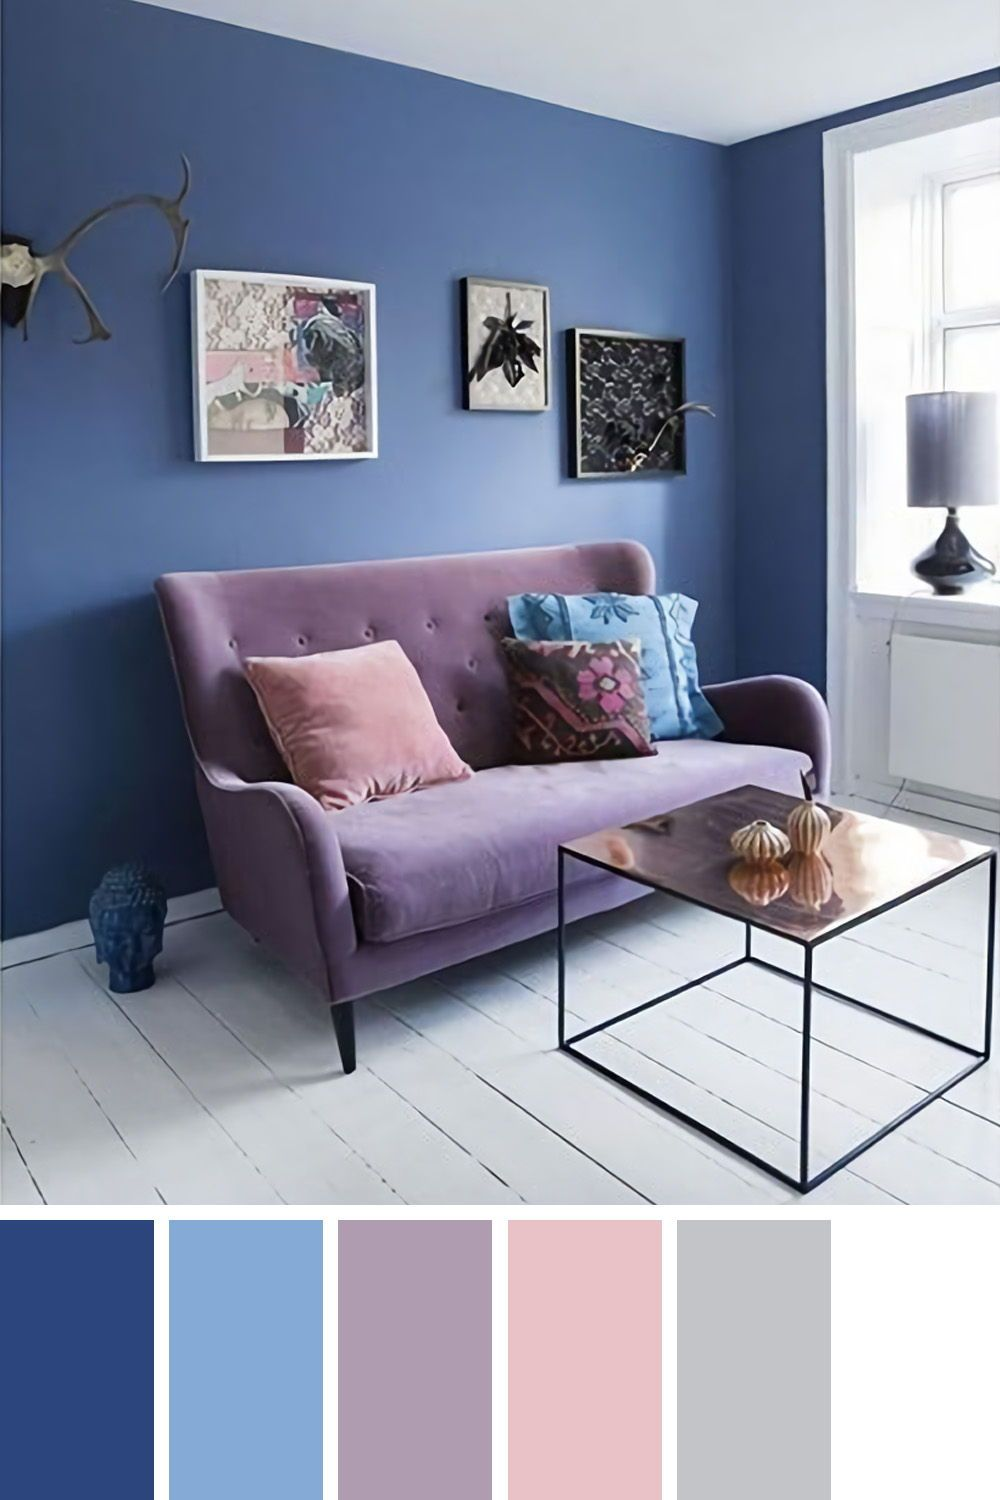 25 Gorgeous Living Room Color Schemes To Make Your Room Cozy With